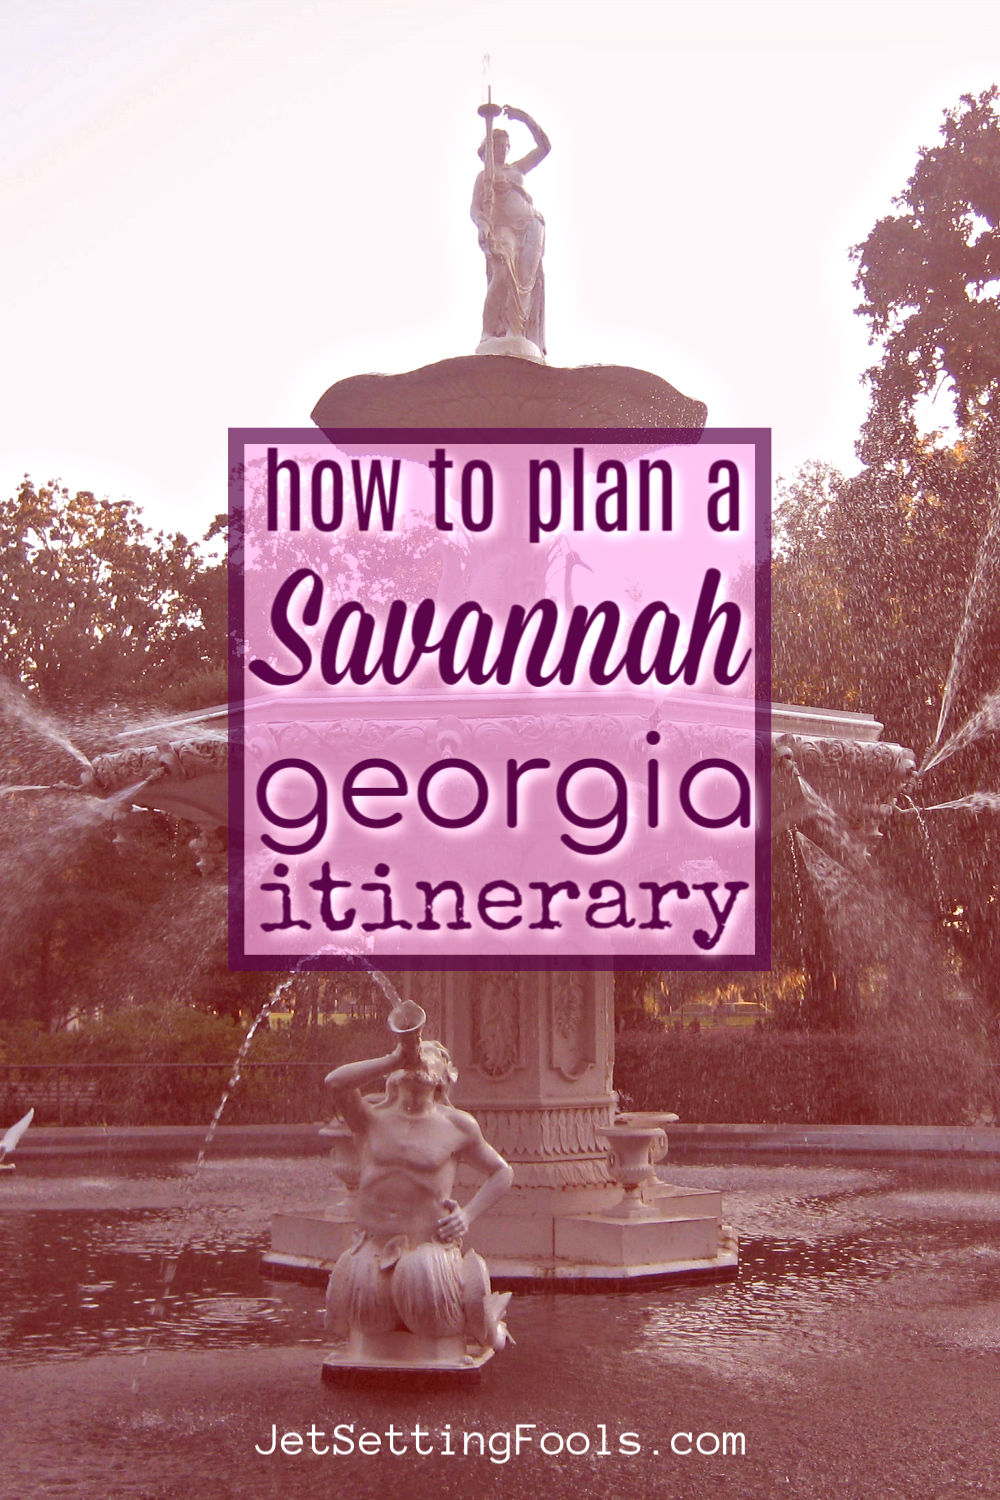 How To Spend a Weekend in Savannah Georgia by JetSettingFools.com